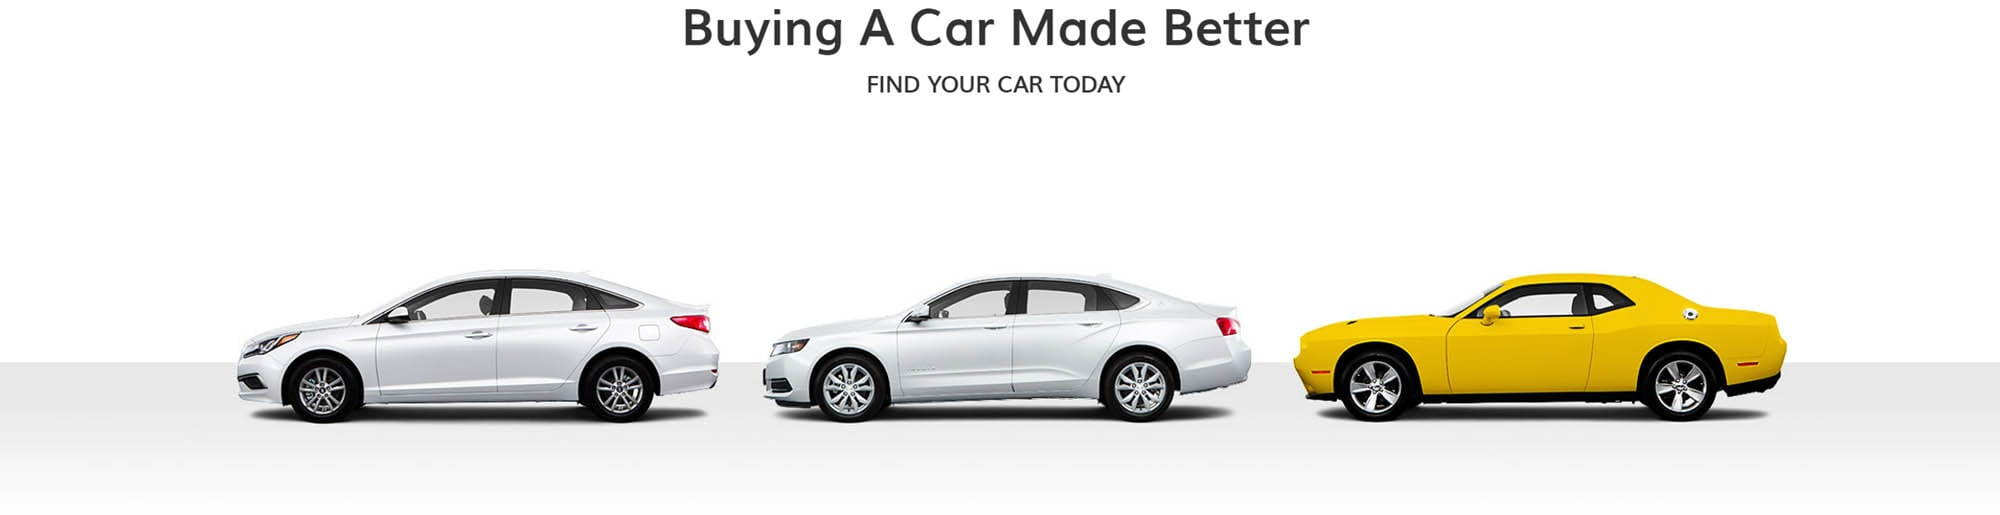 Hertz Car Sales A Better Way To Buy Used Cars